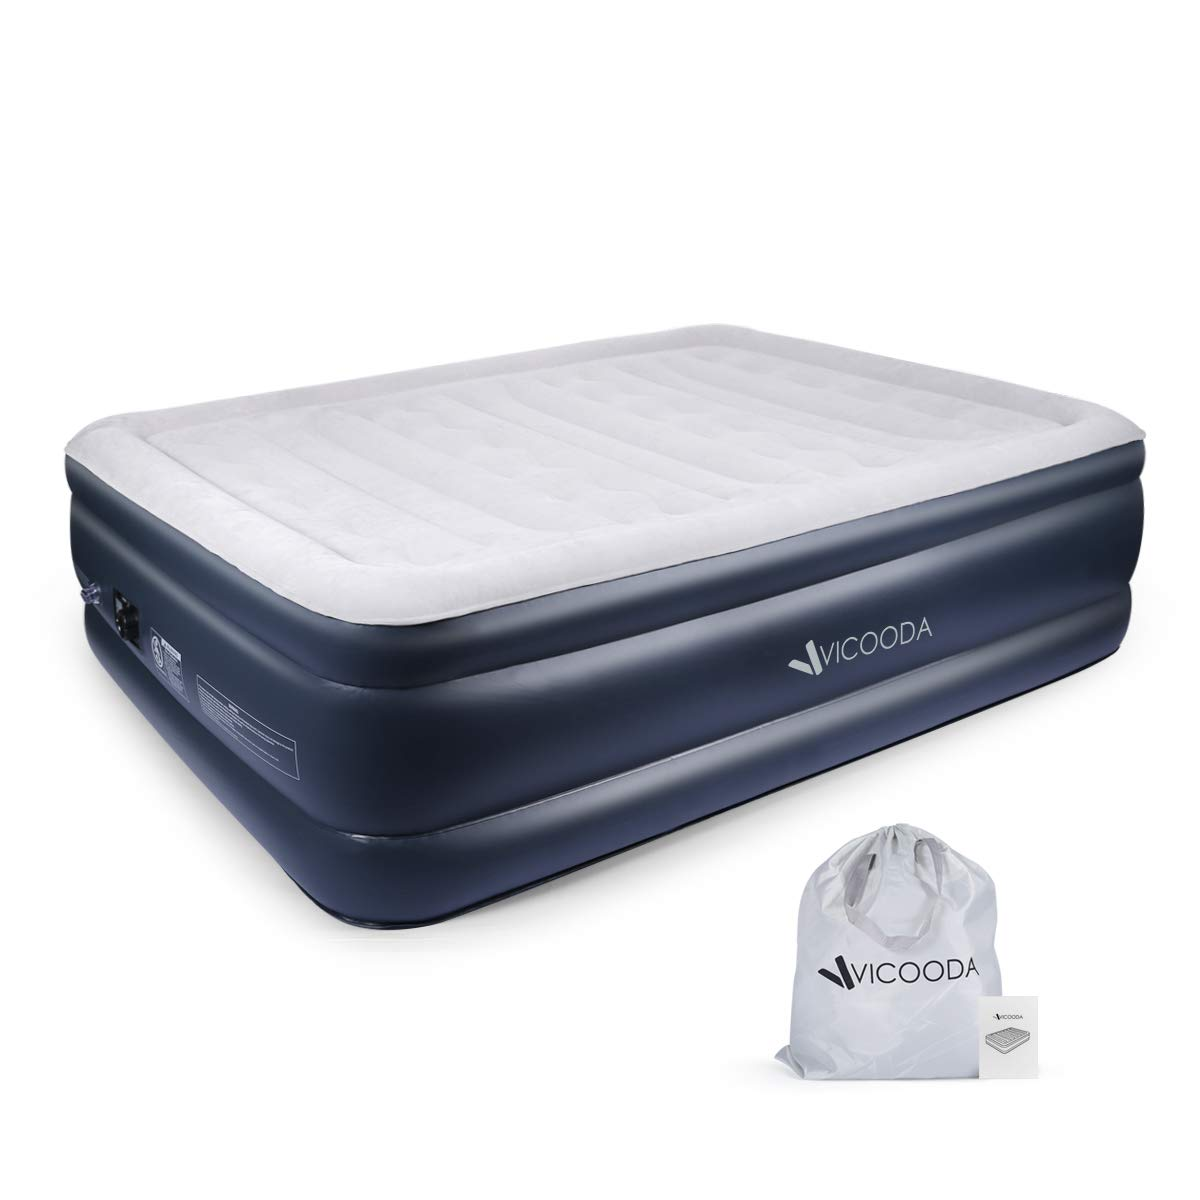 VICOODA Air Mattress Twin Size Blow Up Raised Guest Durable Firm Bed Inflatable Airbed with Built-in Electric Pump, 18 inch in Height, 550 lb in Capacity, PVC Materials, Upgraded & Easy Setup ID0011US-01